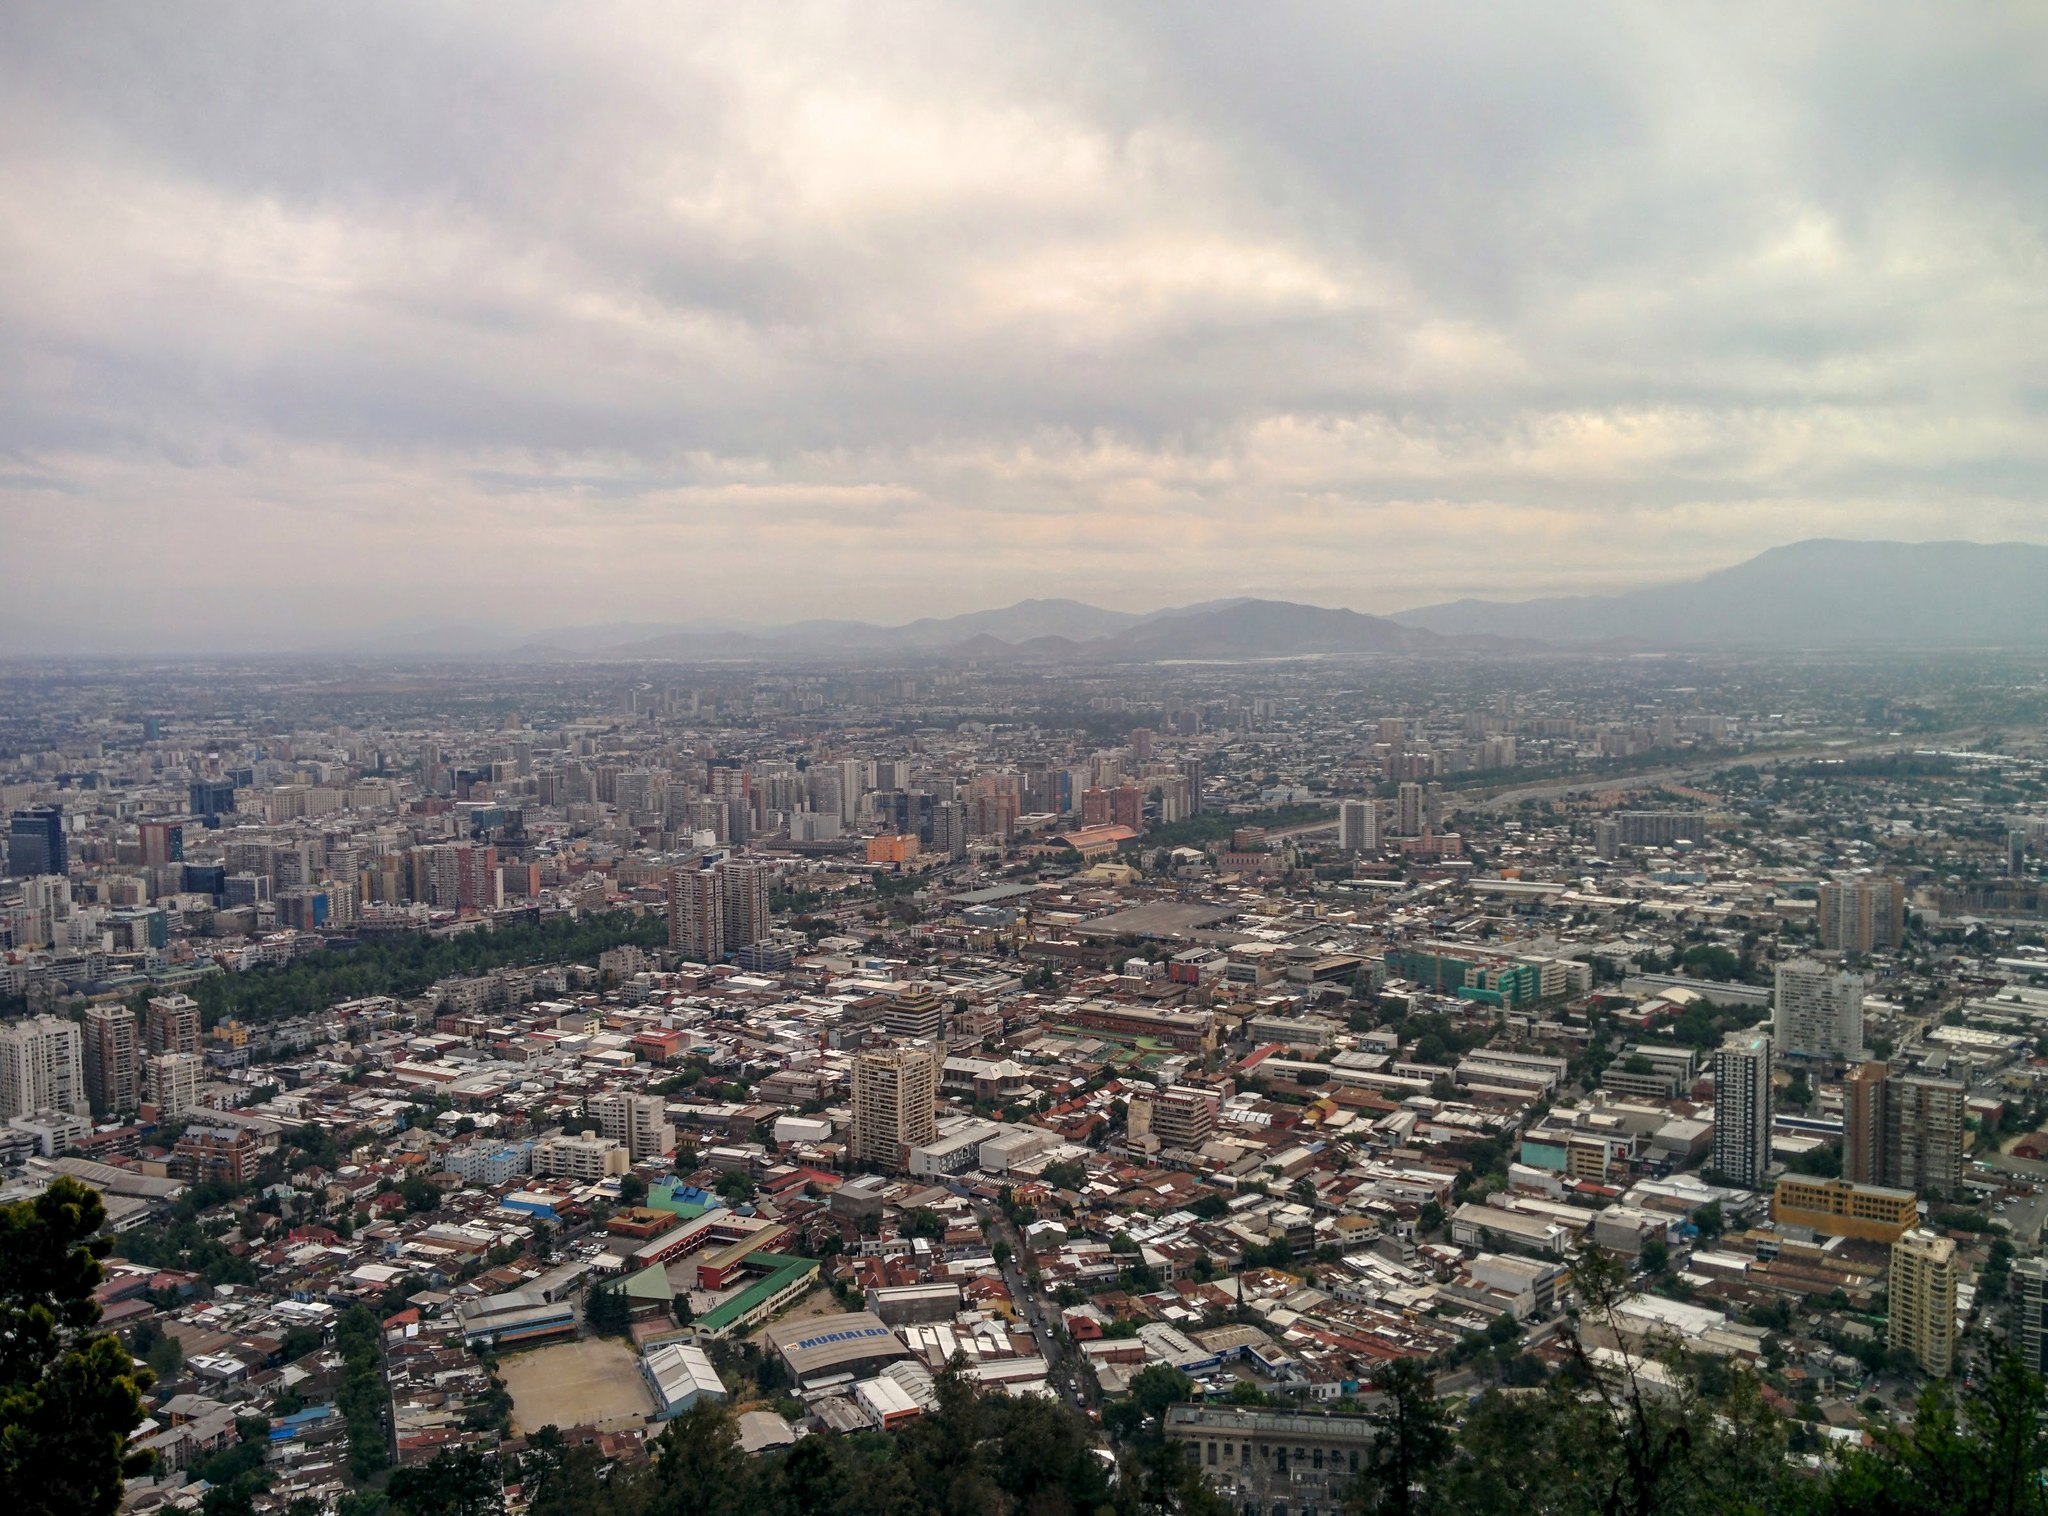 A view of Santiago from Cerro San Cristobal